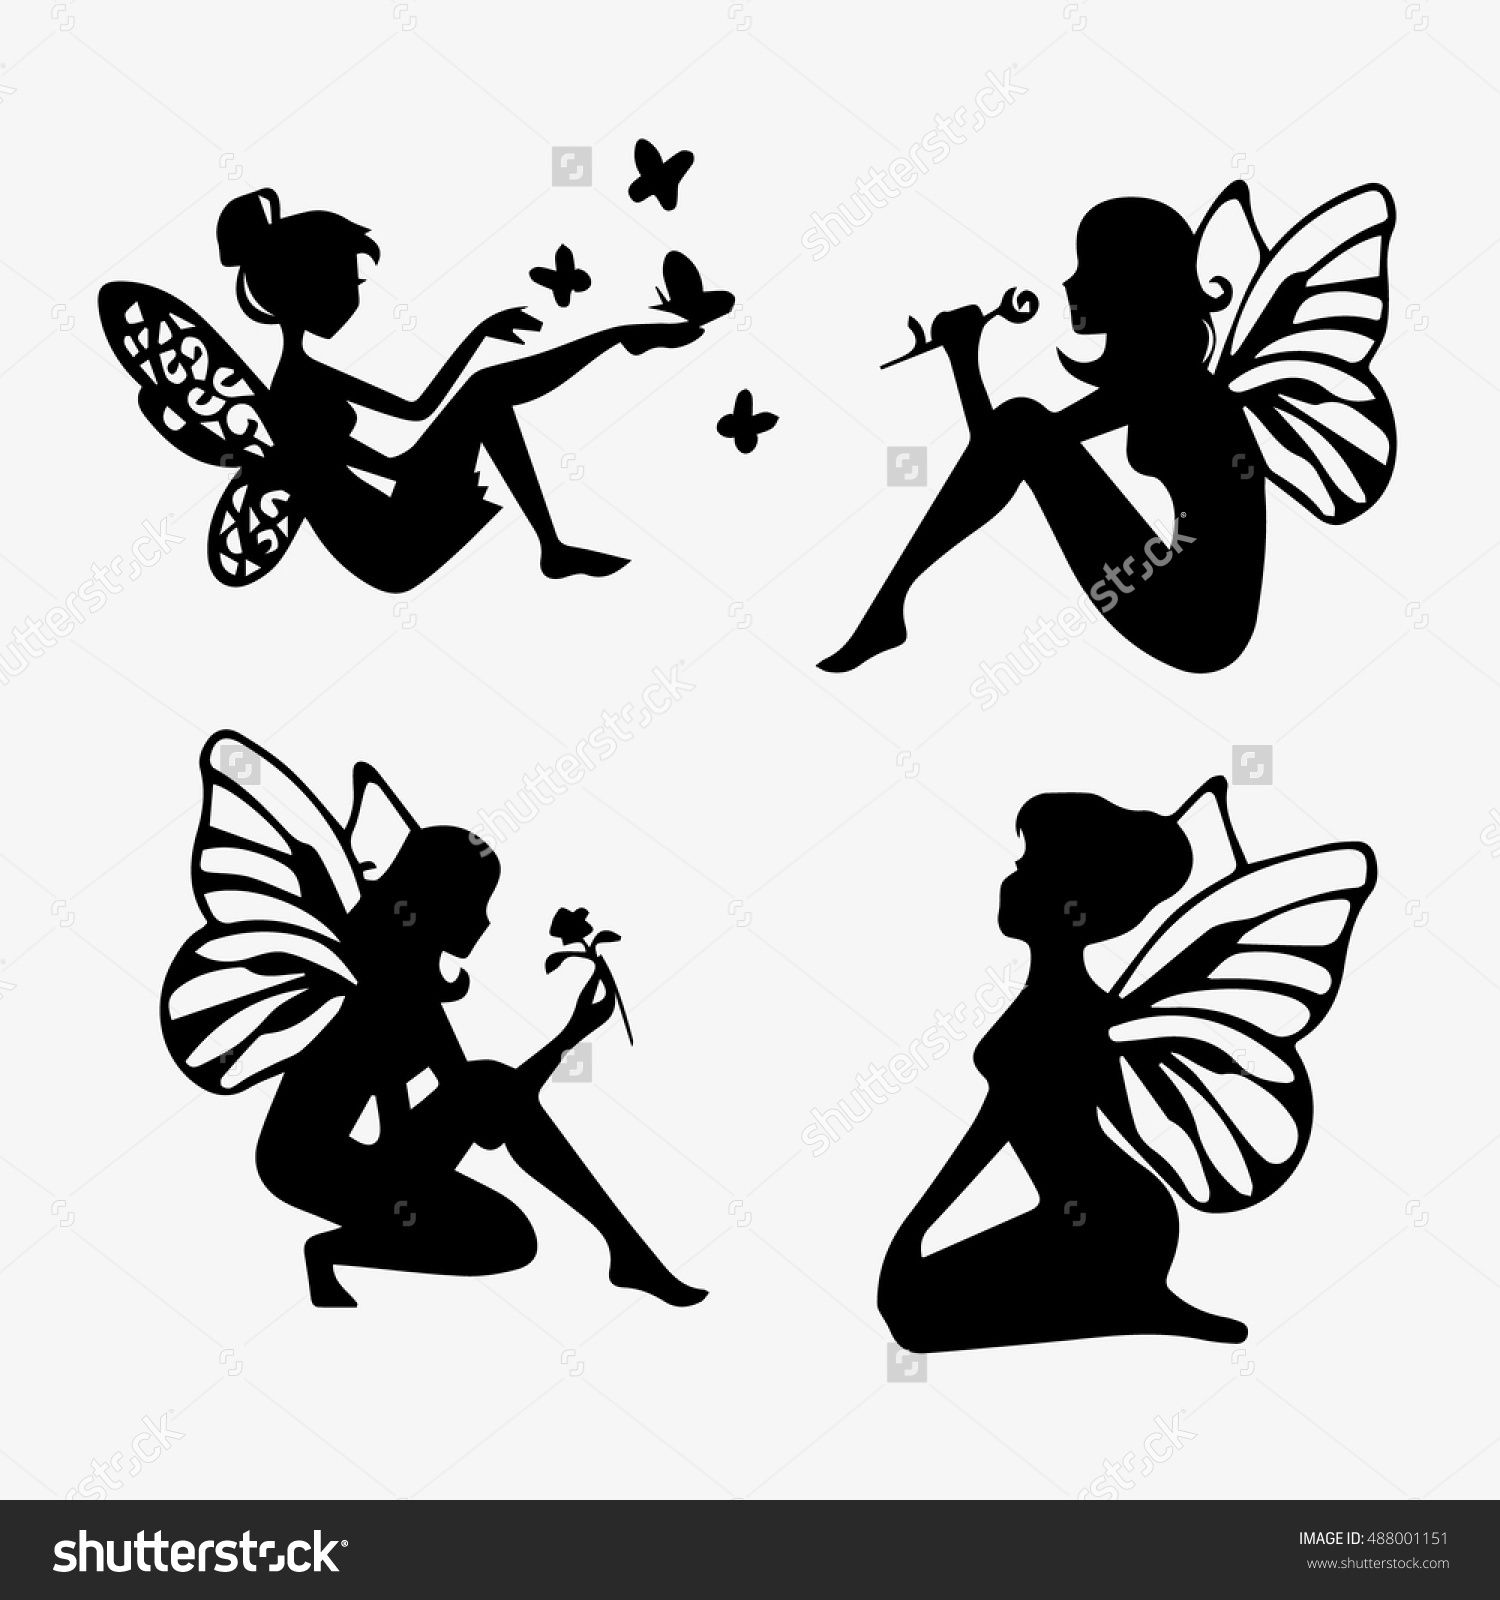 fairy silhouette clip art free at getdrawings com free for rh getdrawings com fairy tale clipart free fairy clip art free black white